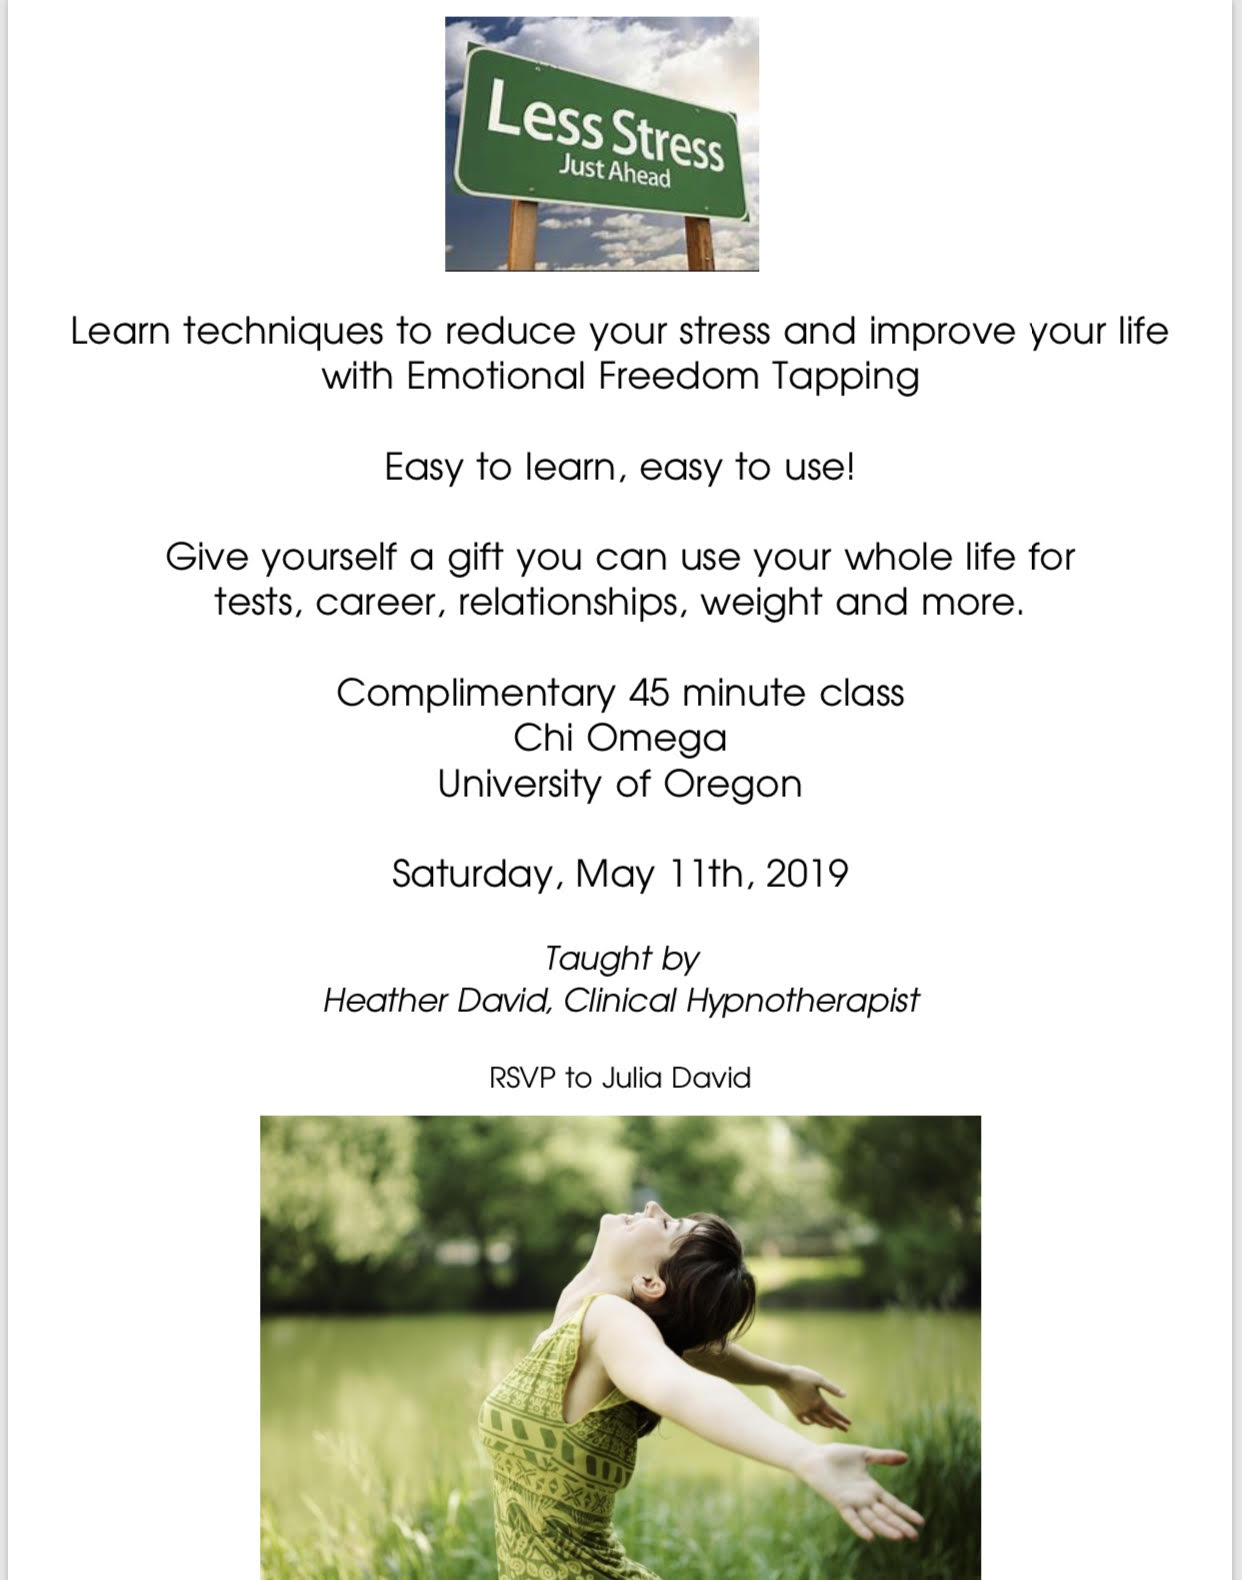 Emotional Freedom Tapping Event with Heather David, Clinical Hypnotherapist